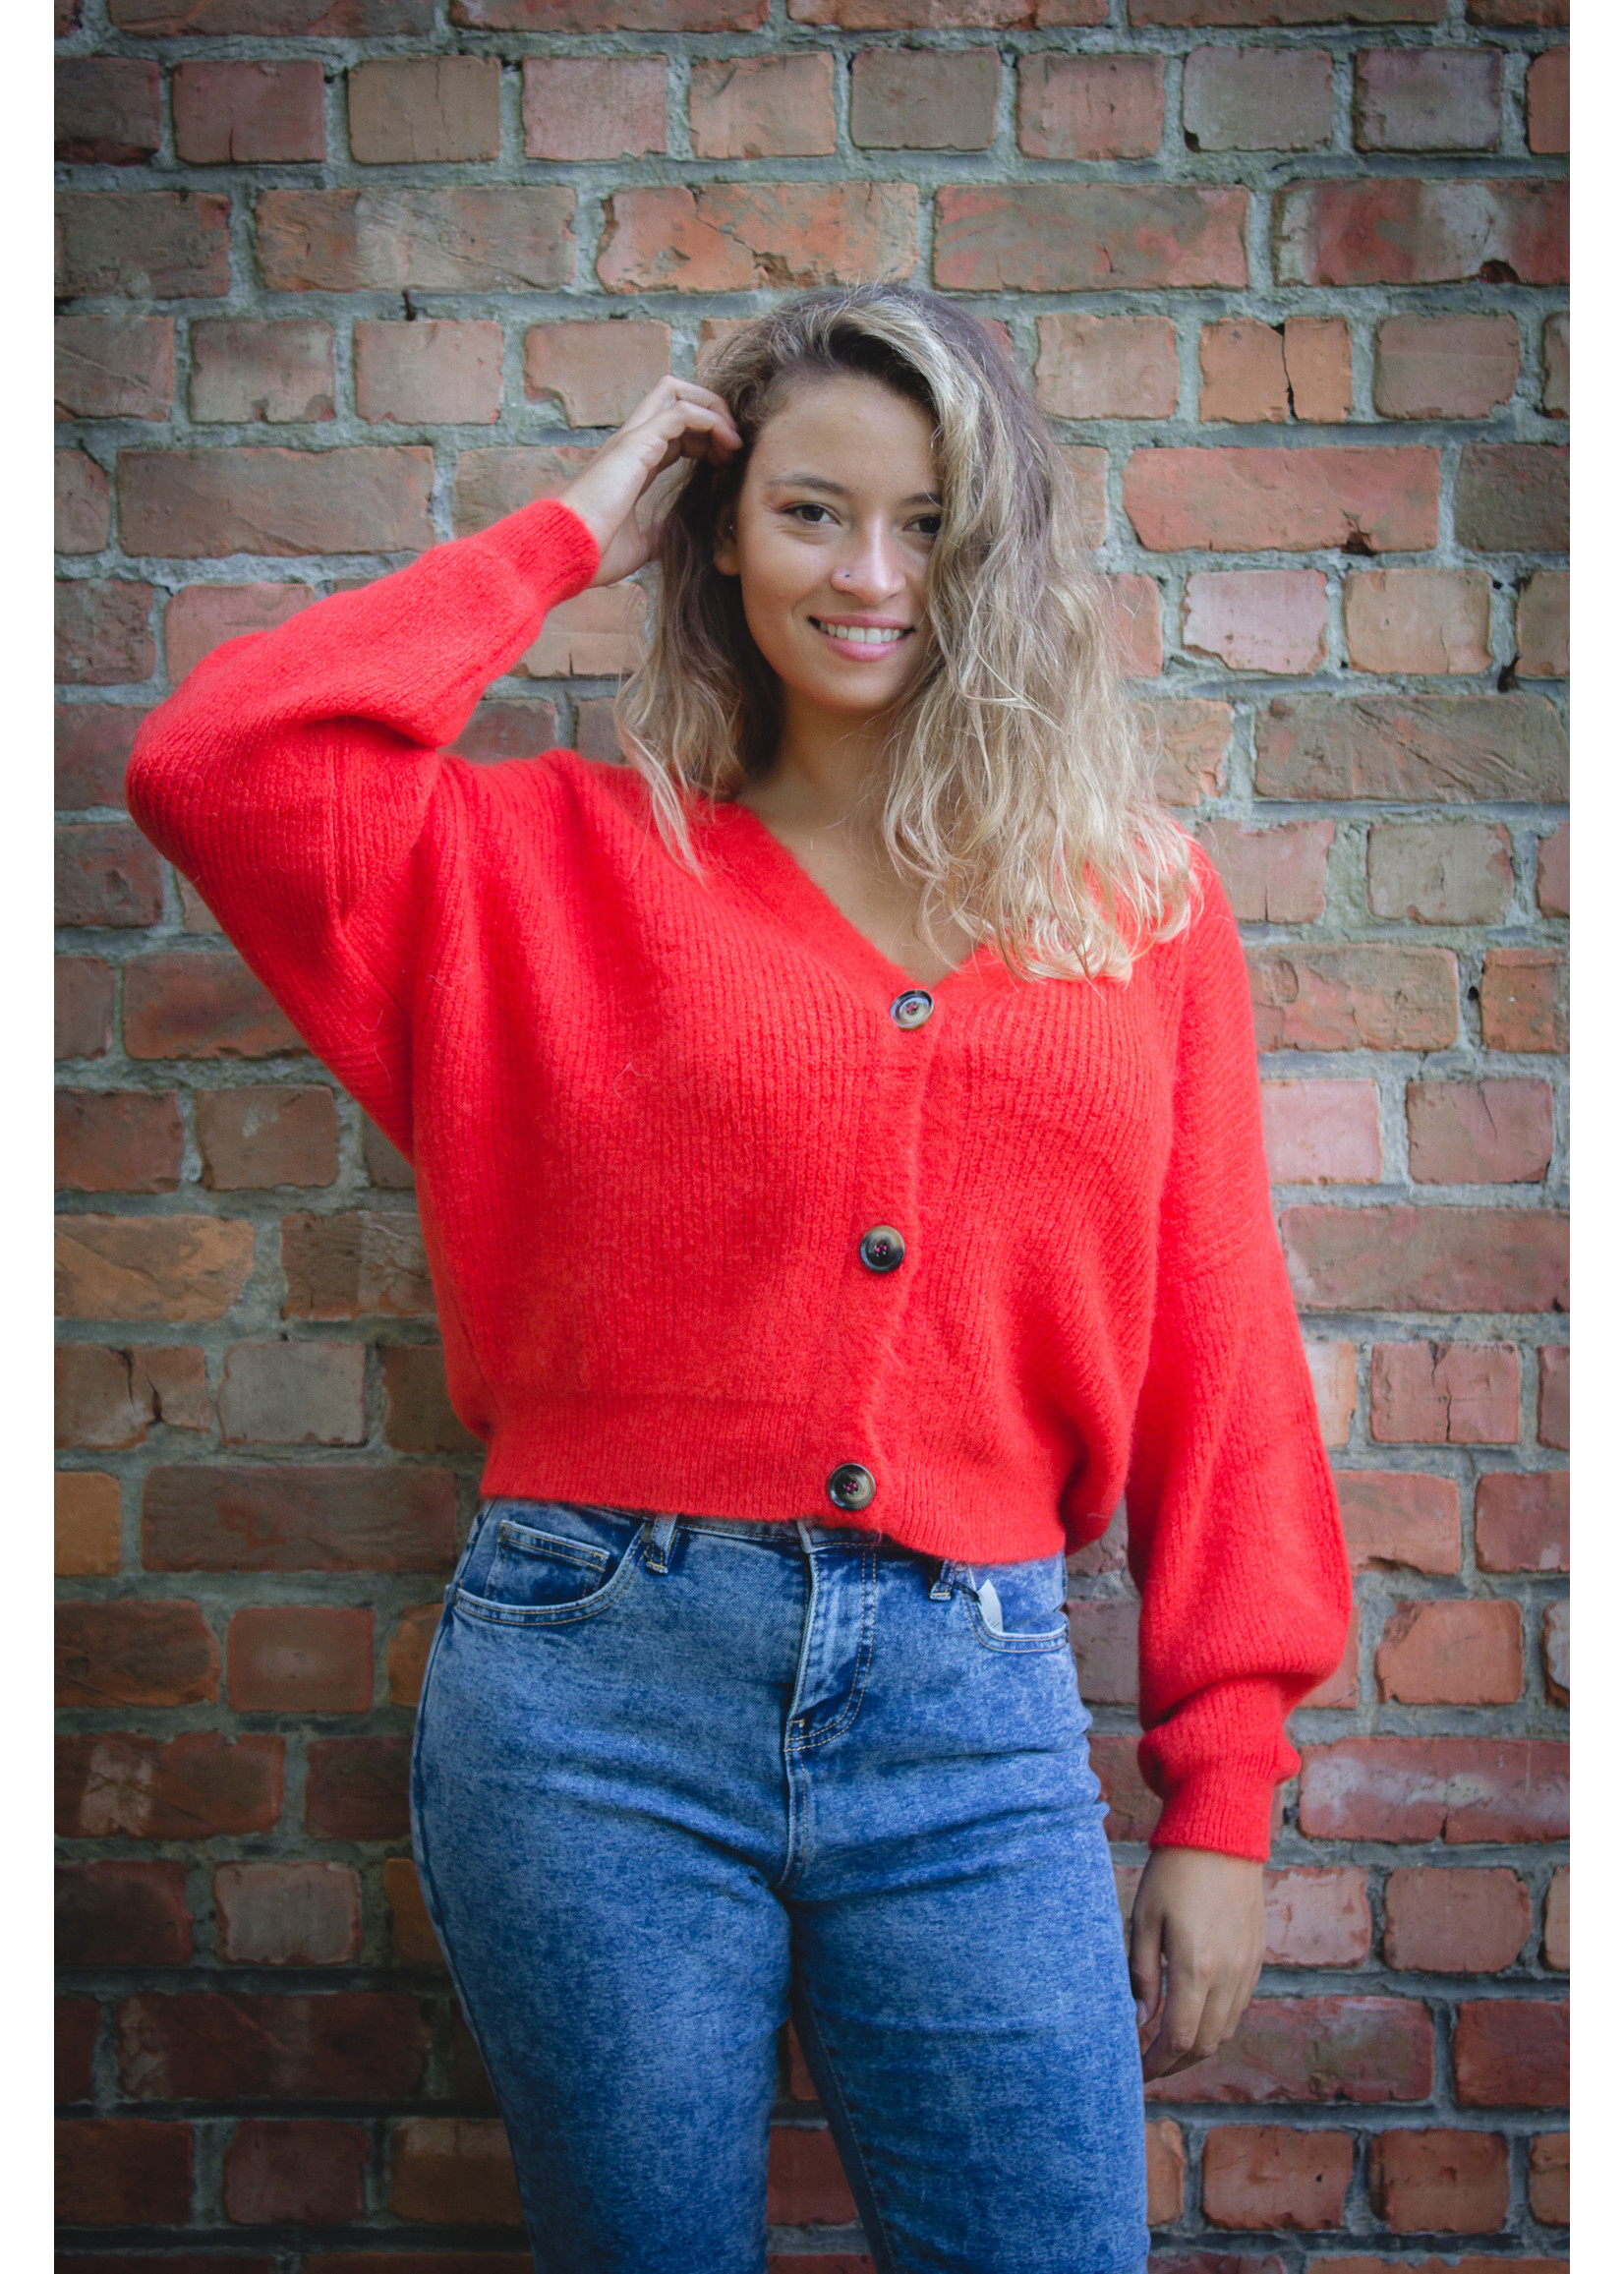 Mika Elles Royal red knitted cardigan